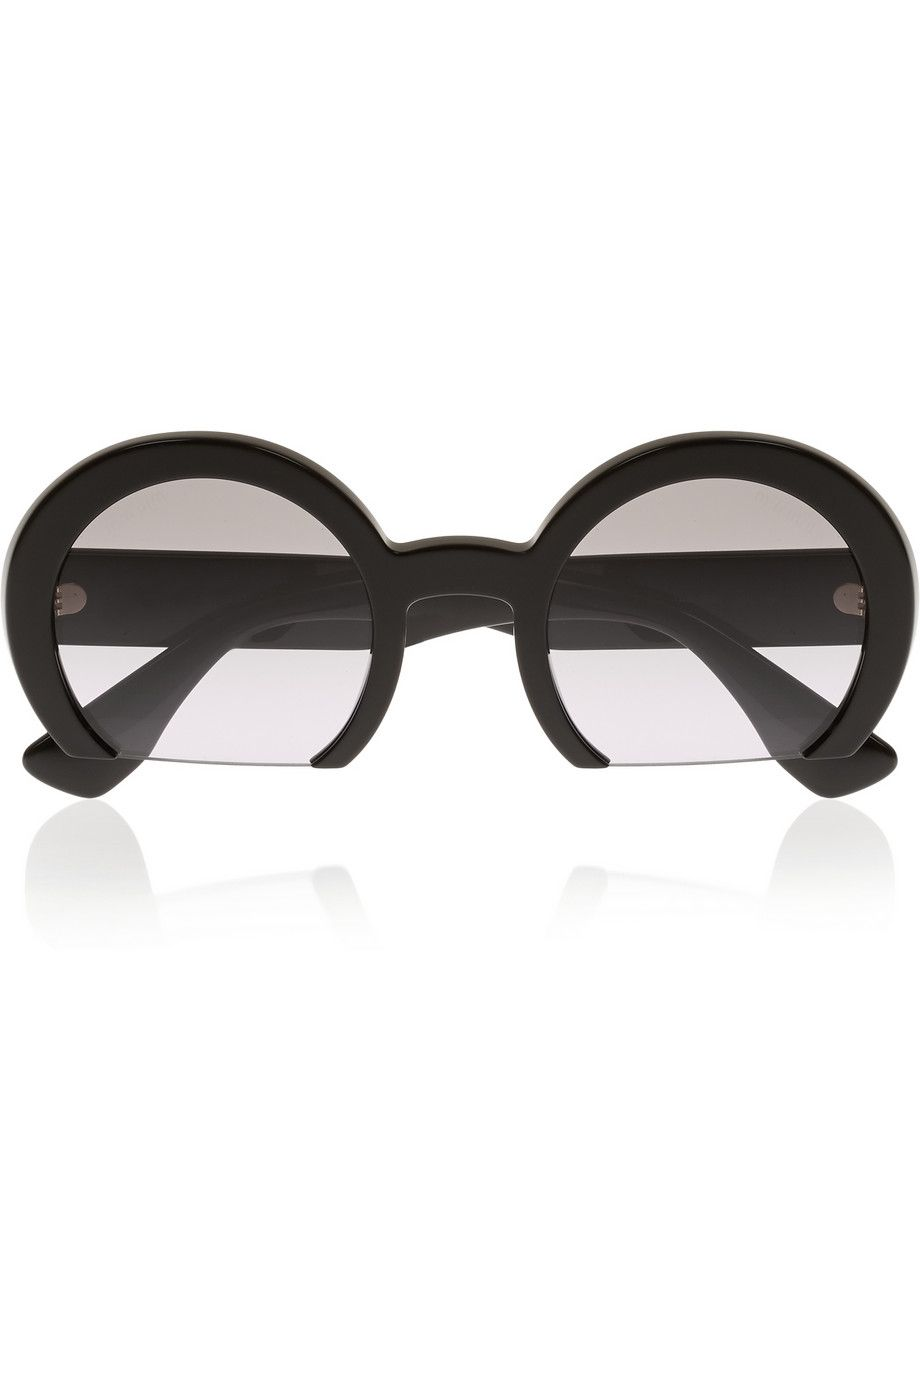 Miu Miu sunglasses with the bottom of the frame cut out? Yes please ...